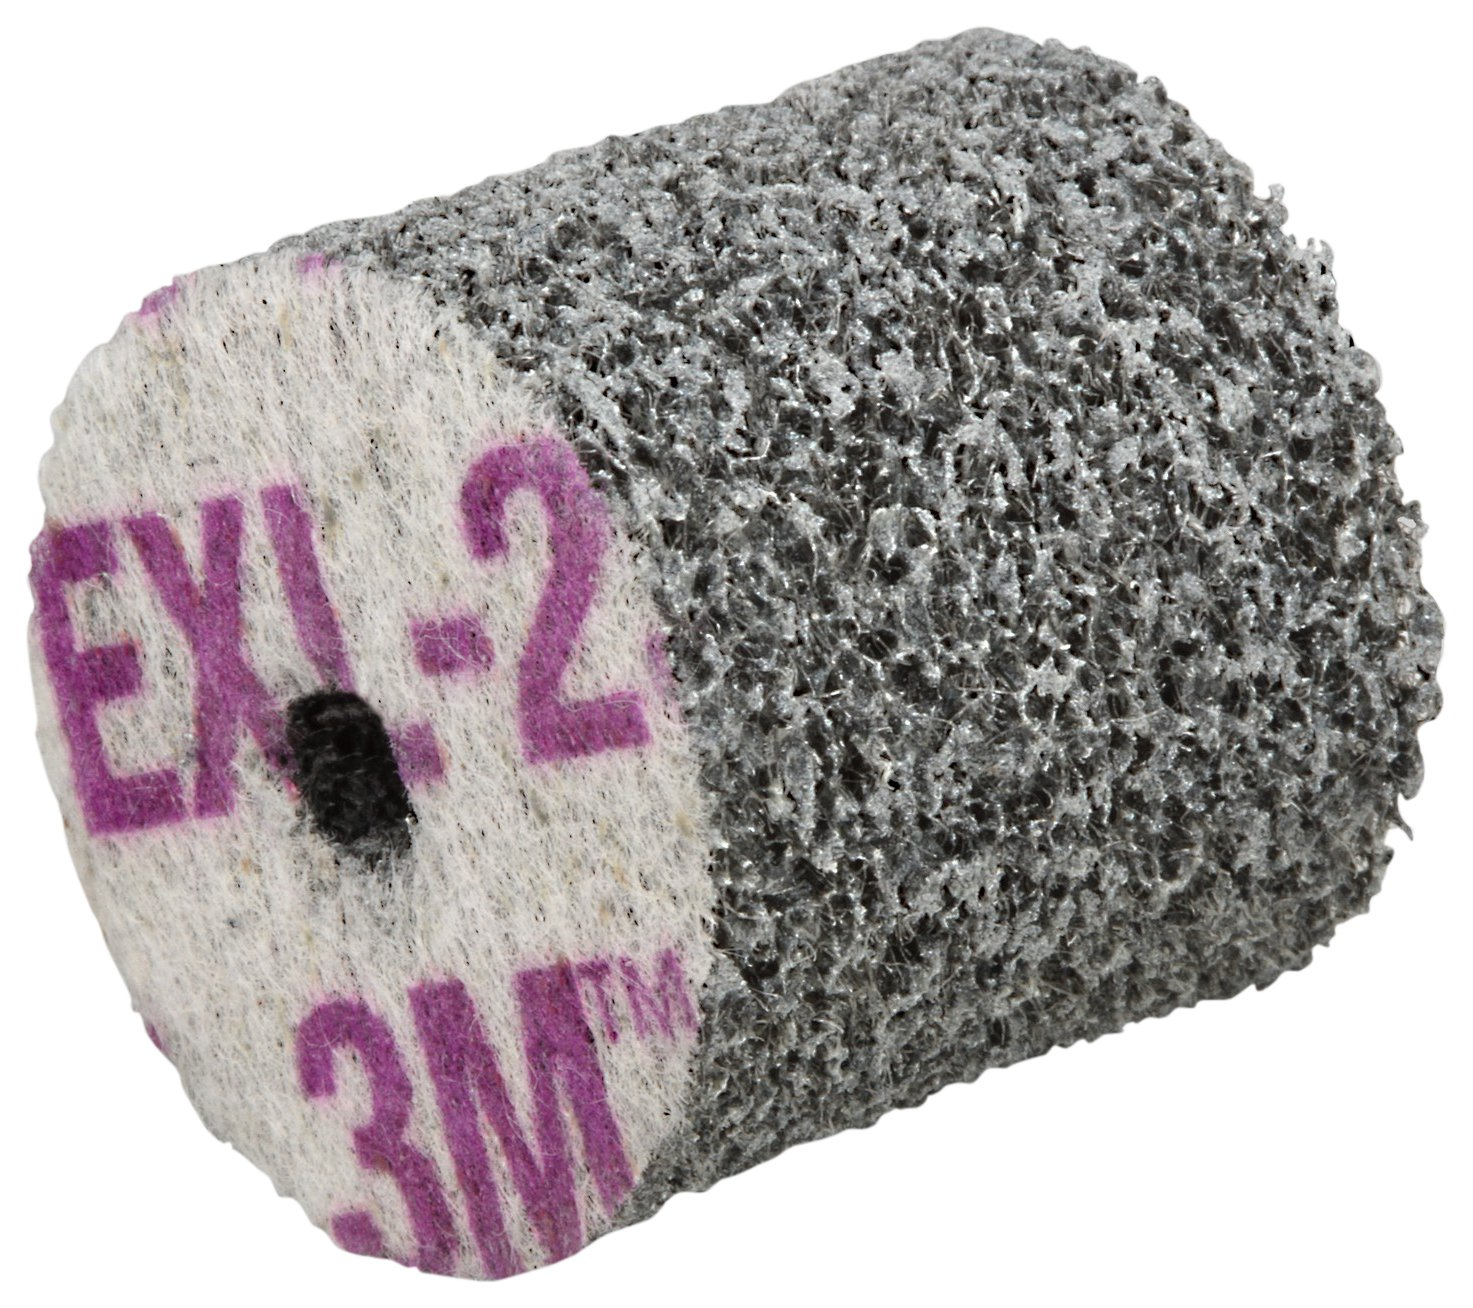 3200 rpm Abrasive Grit 10 x 1 x 1 2S FIN Scotch-Brite 27939 EXL Unitized Wheel 10 Diameter